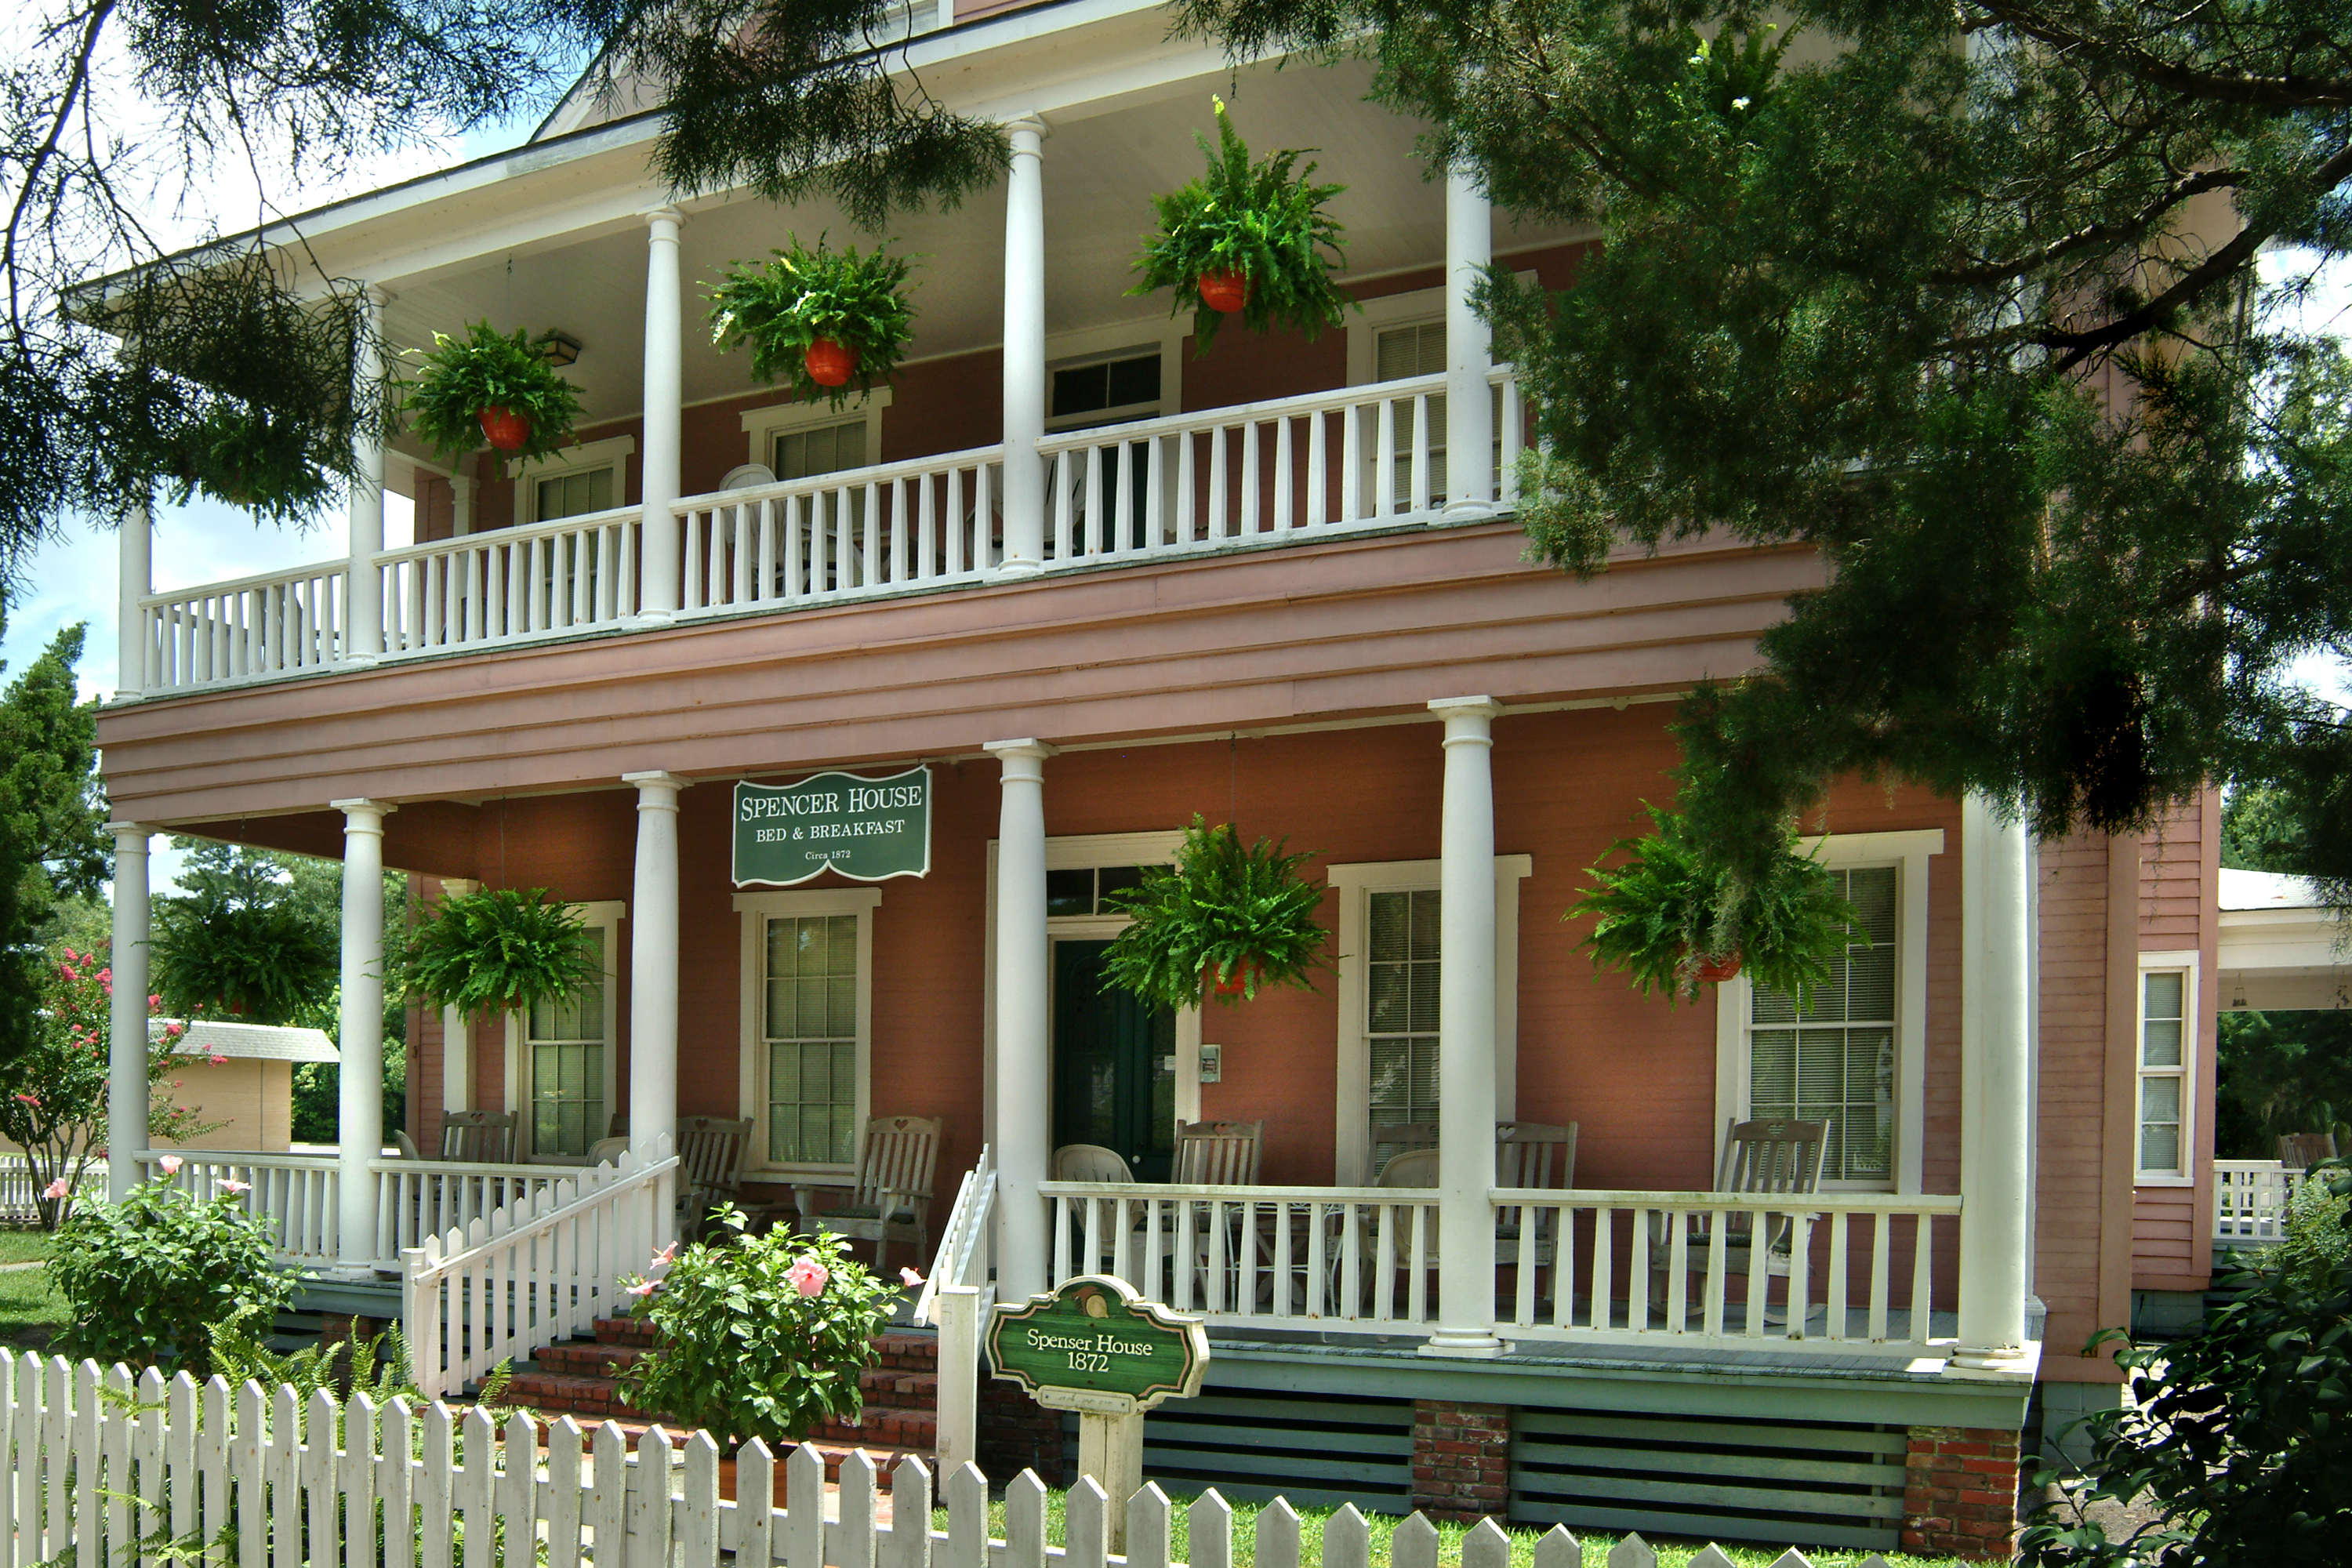 Spencer House Inn Bed & Breakfast